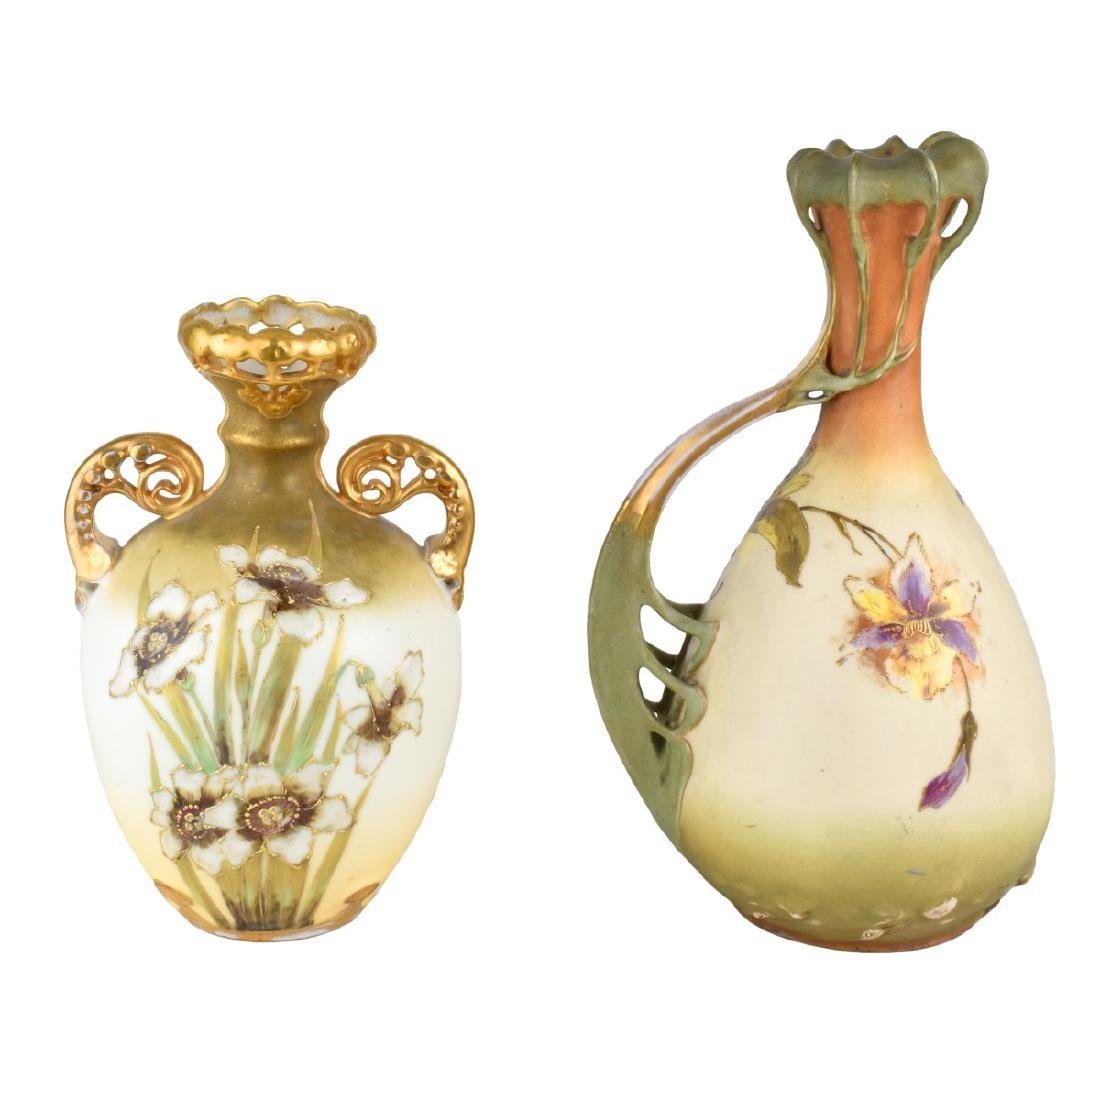 Turn Teplitz Pottery Ewer and Vase